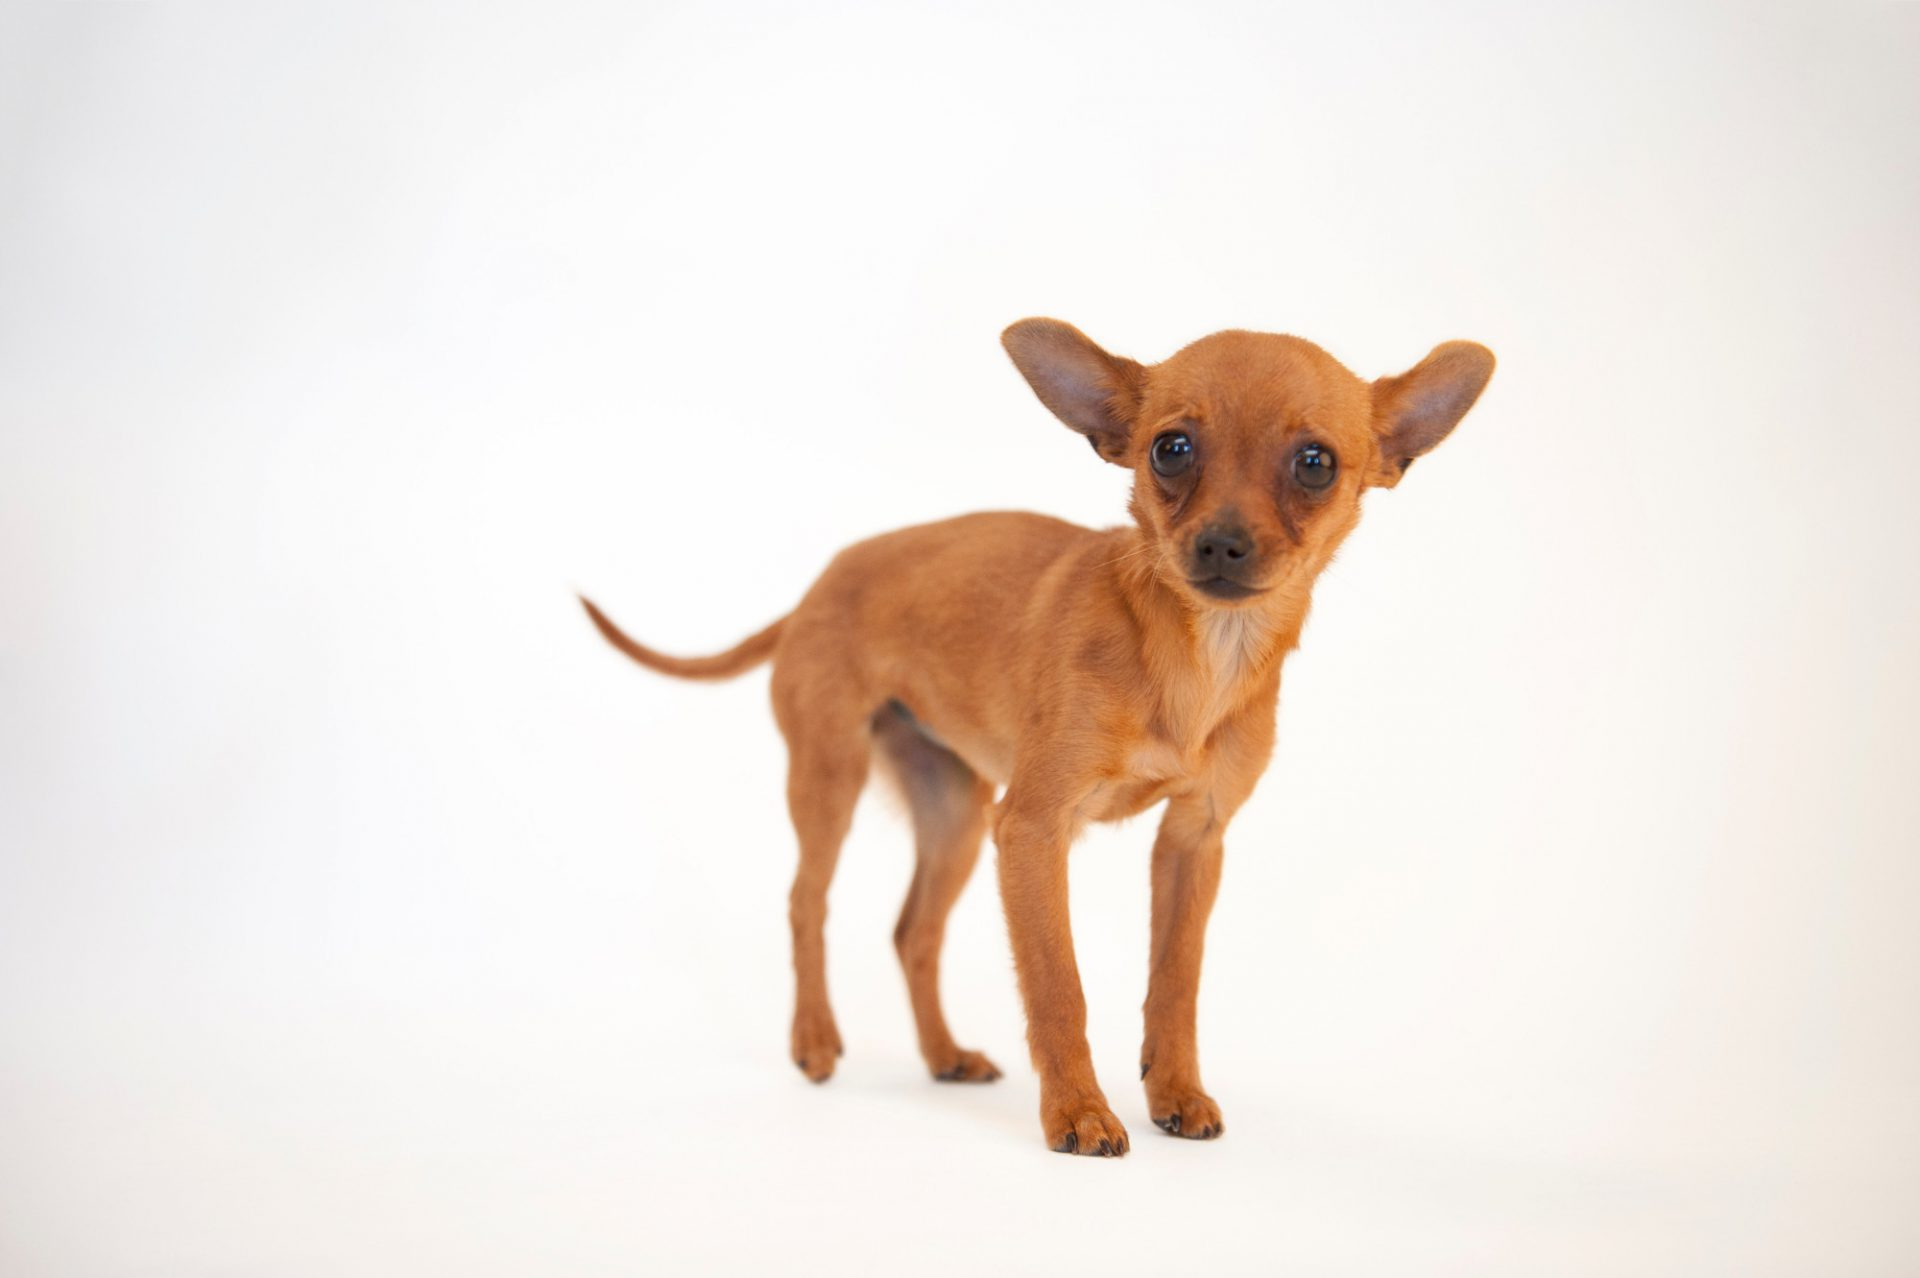 Photo: Cinny, a three month-old Chihuahua at the Capital Humane Society in Lincoln.